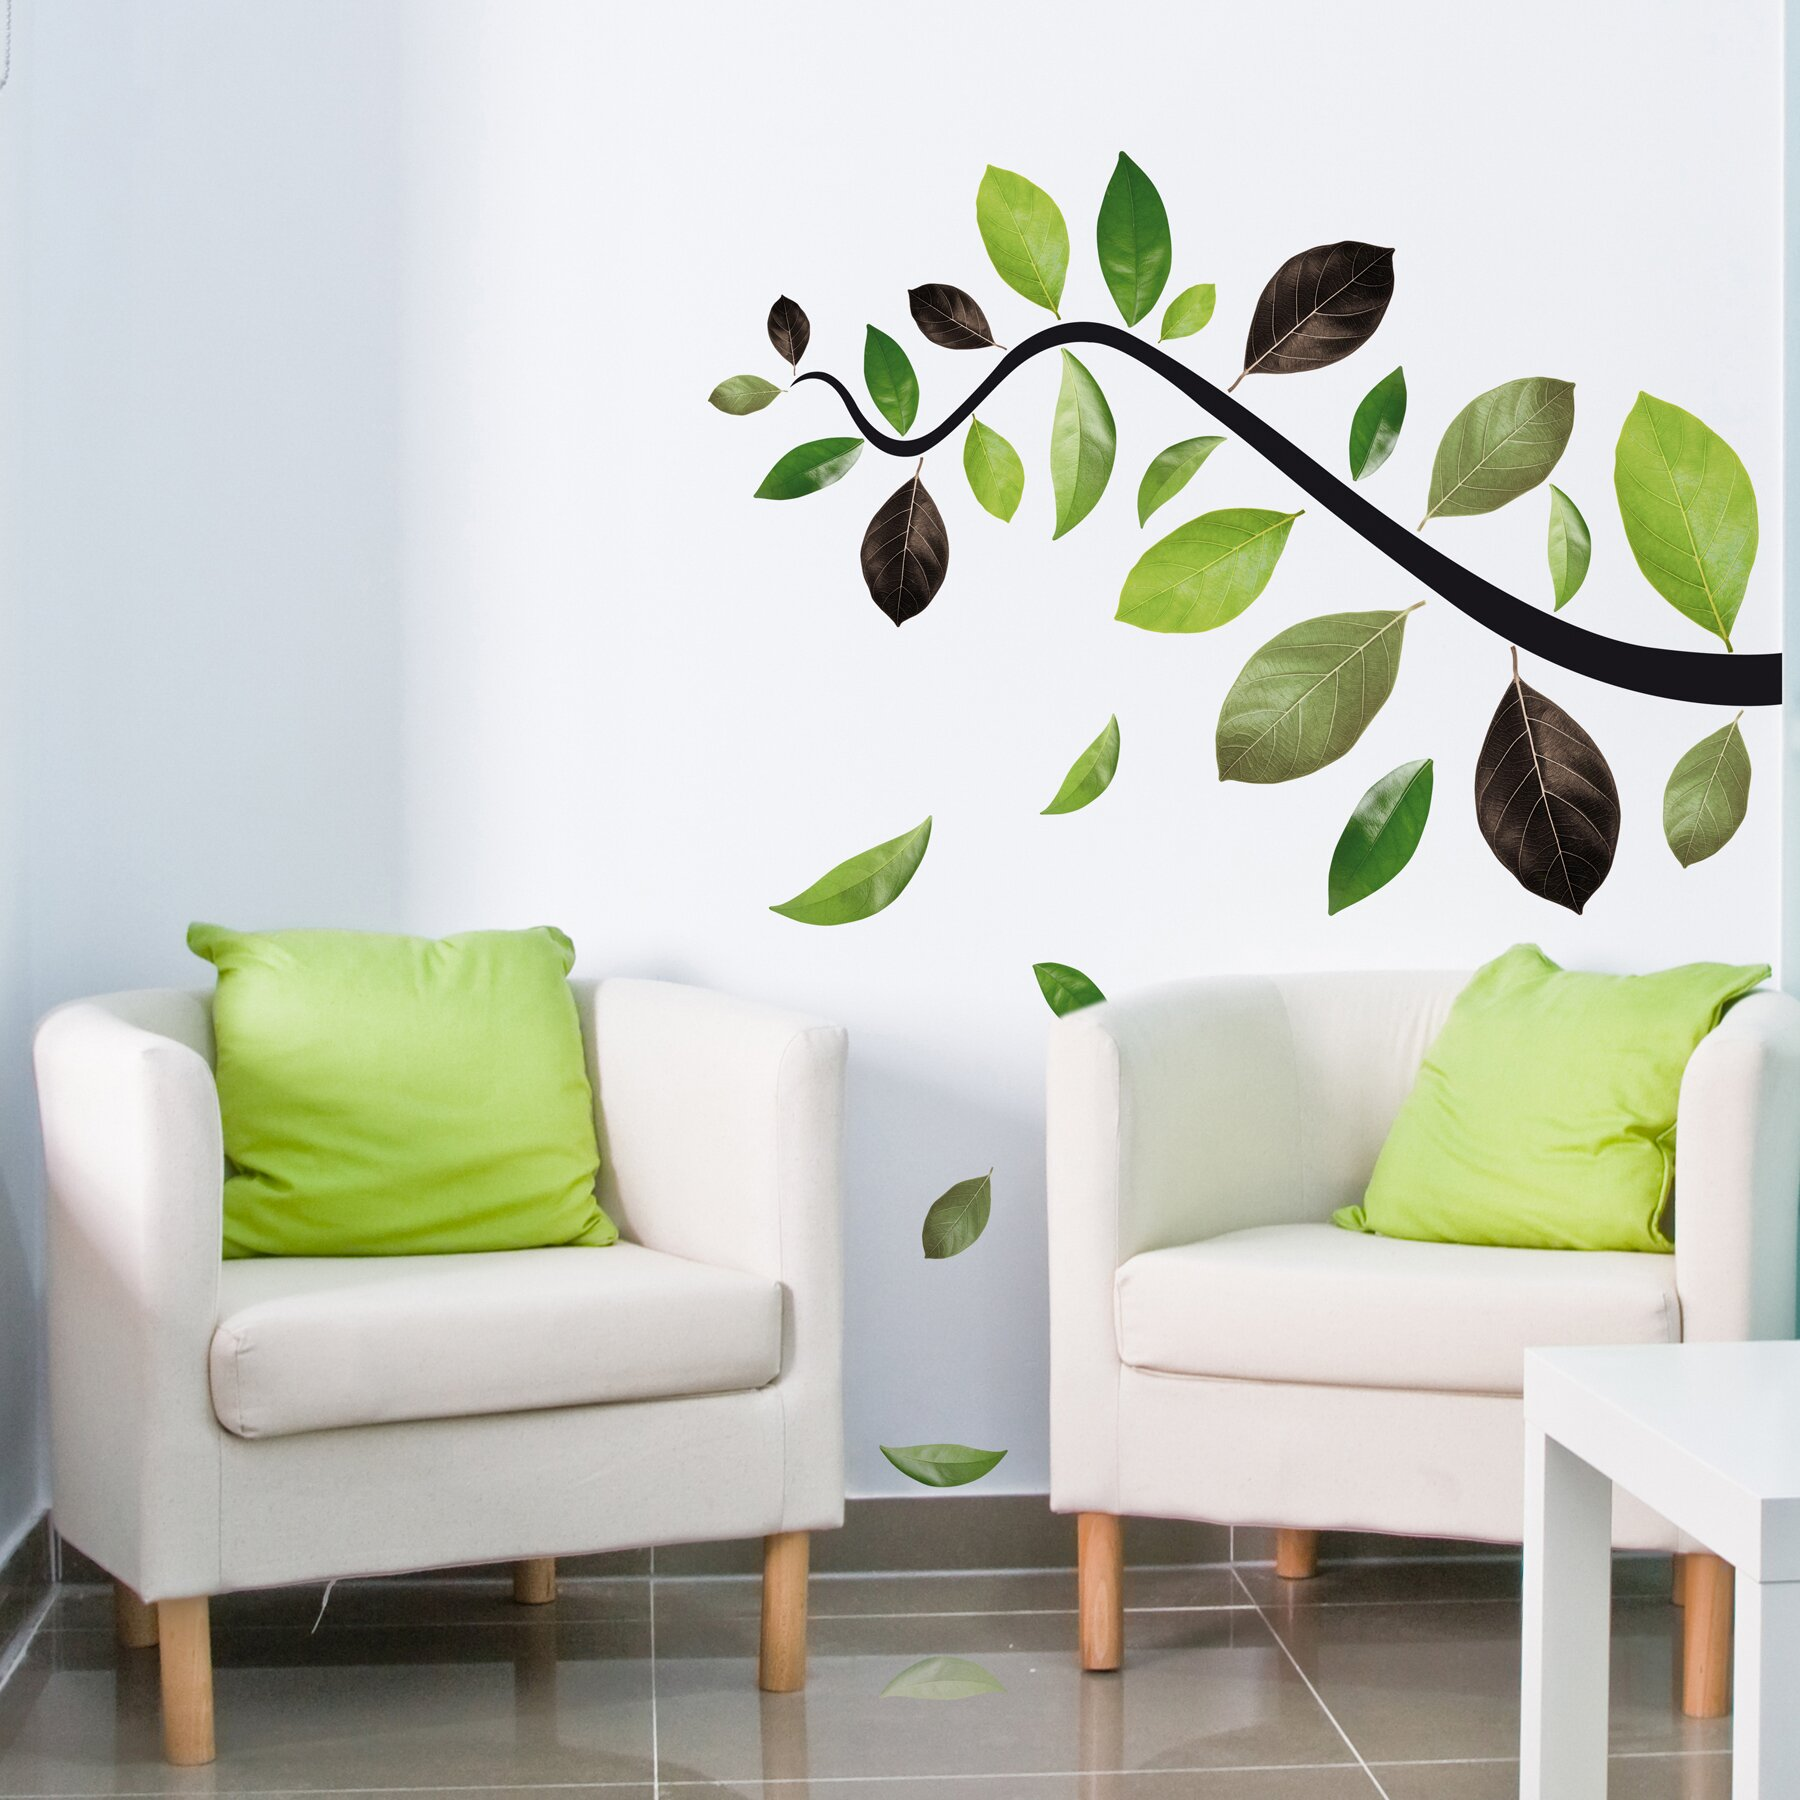 Wallpops Home Decor Line Falling Leaves Wall Decal Reviews Wayfair